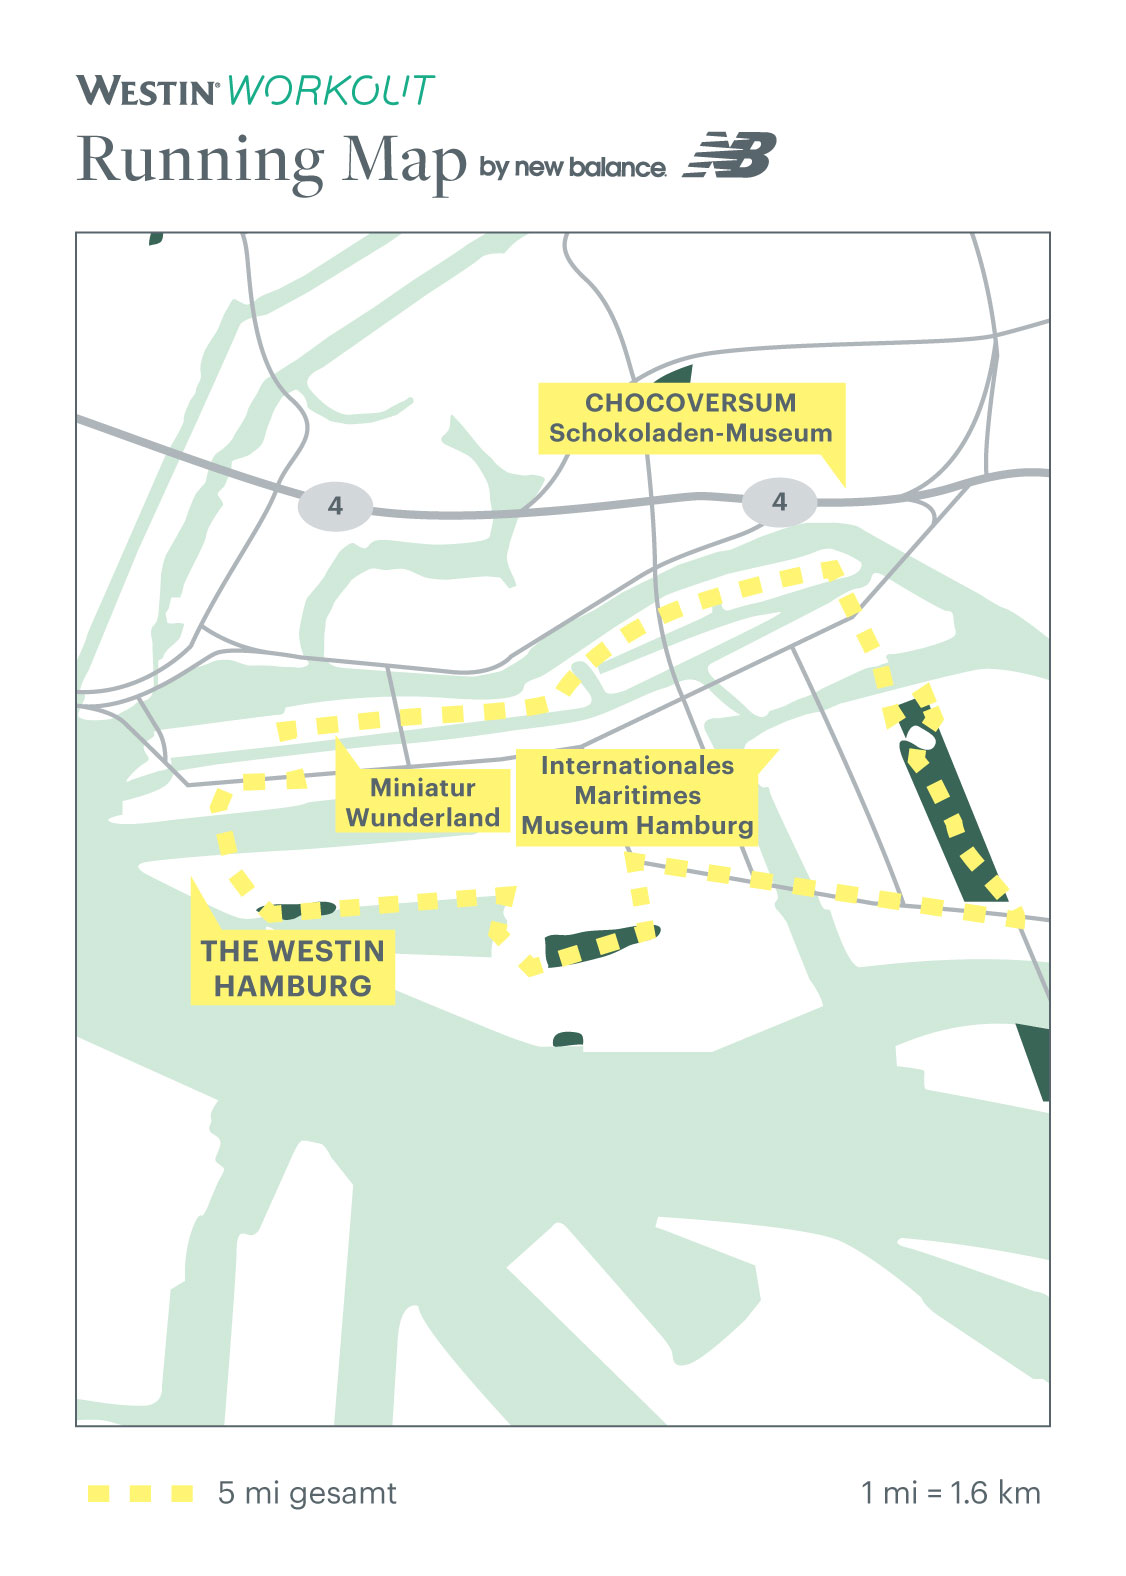 Running Map von The Westin Hamburg